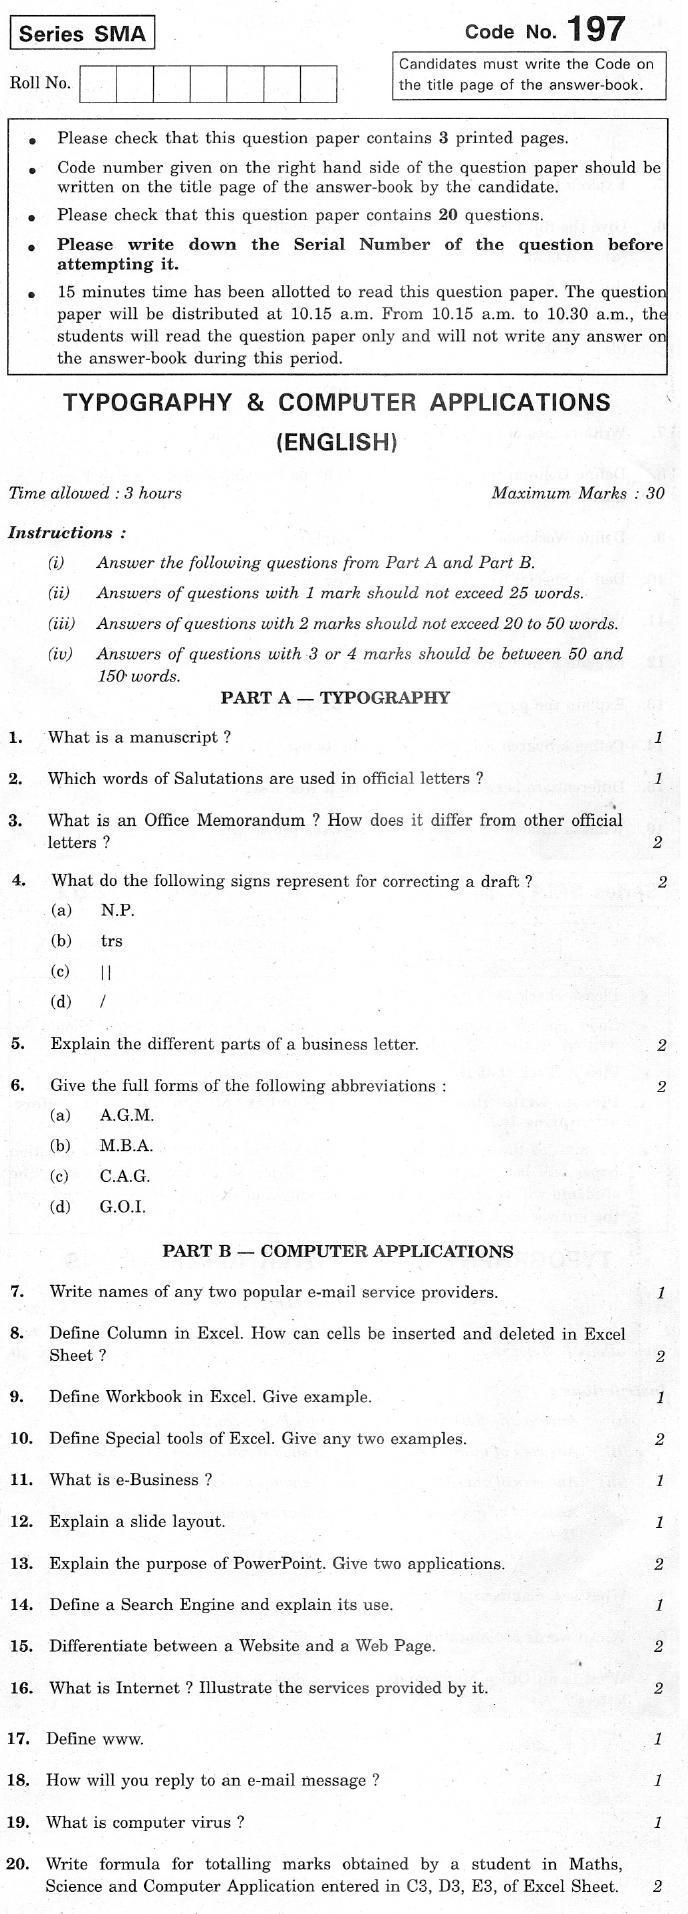 CBSE Class XII Previous Year Question Paper 2012 & Computer Applications (English)